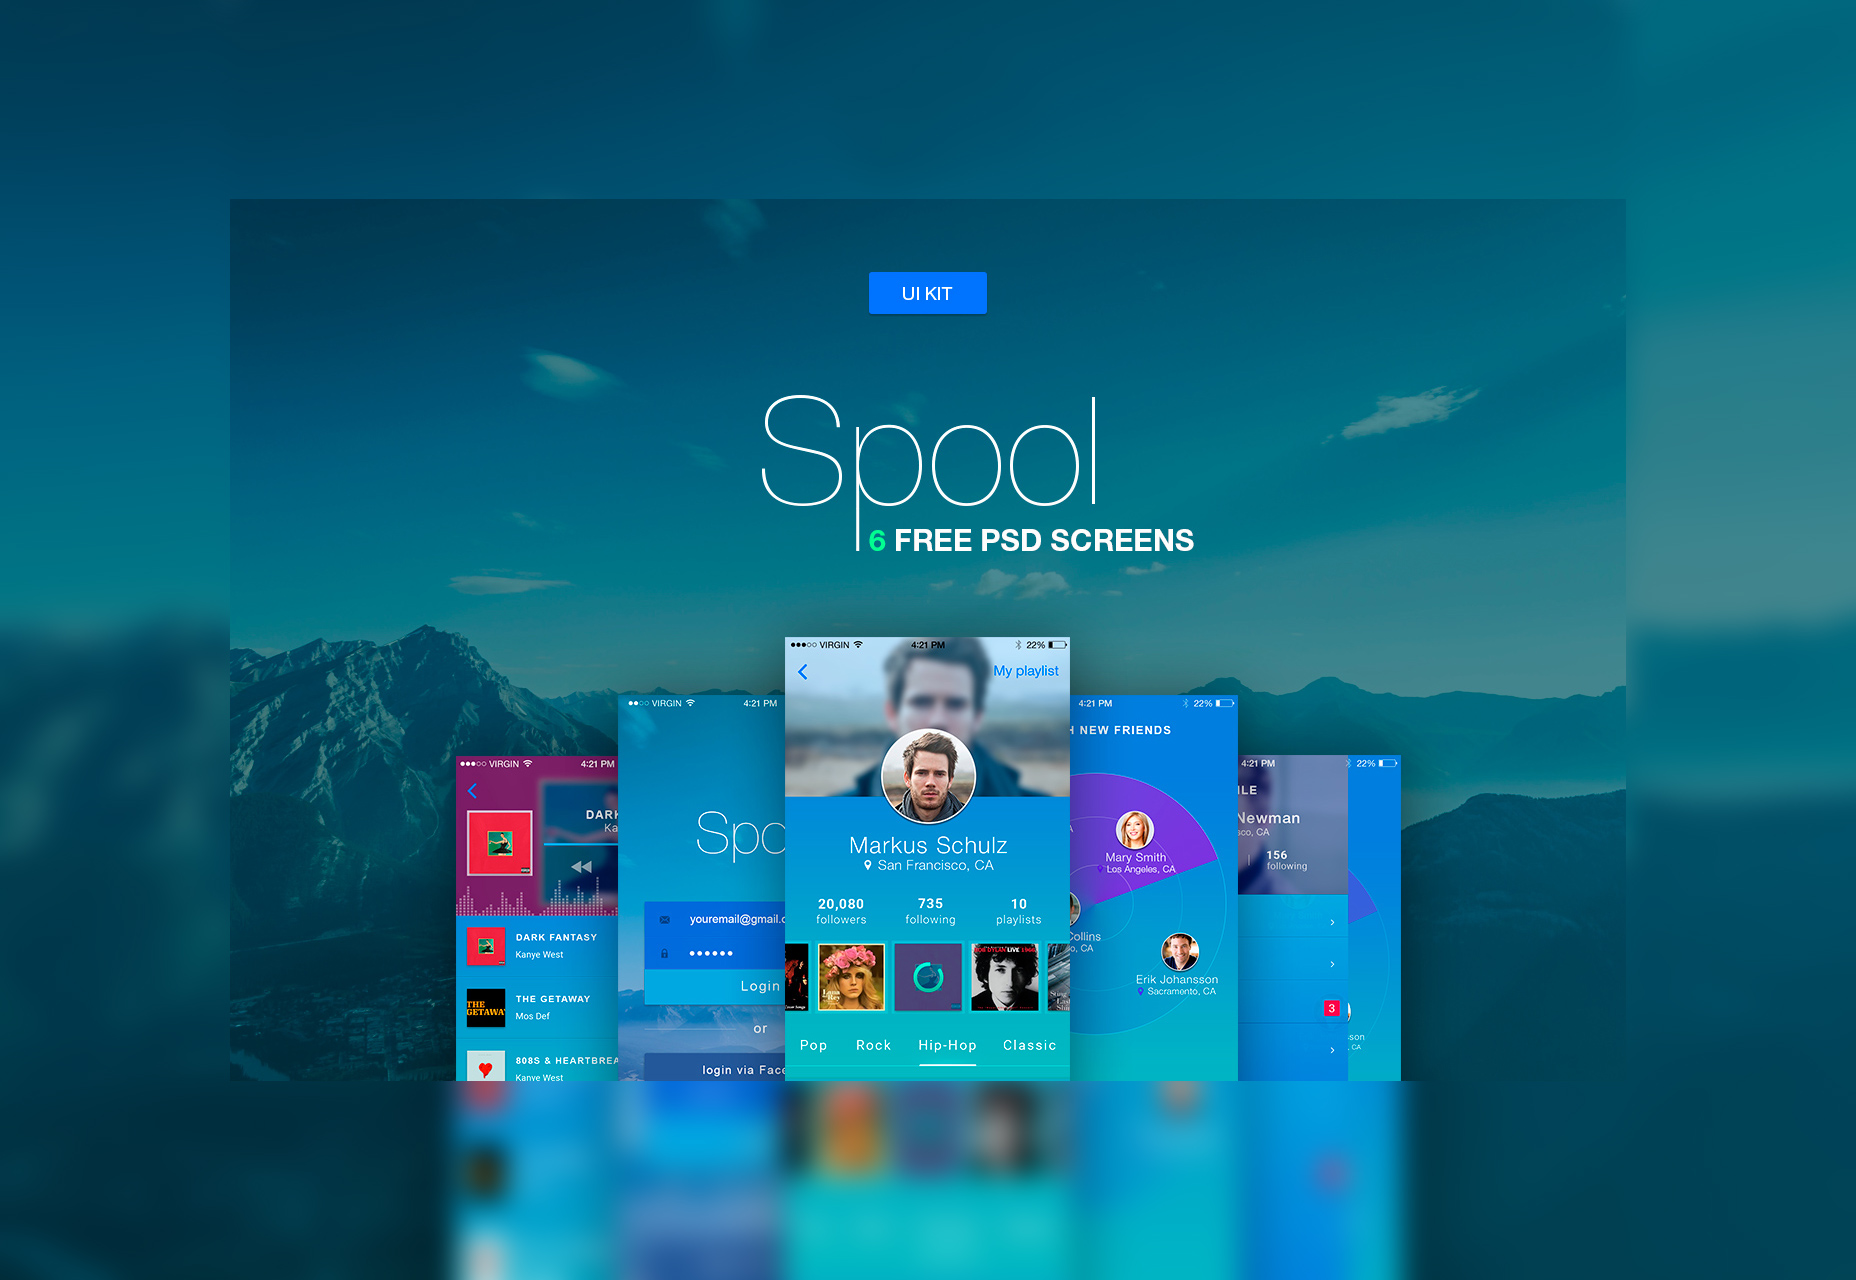 spool-iphone-material-design-ui-kit-psd